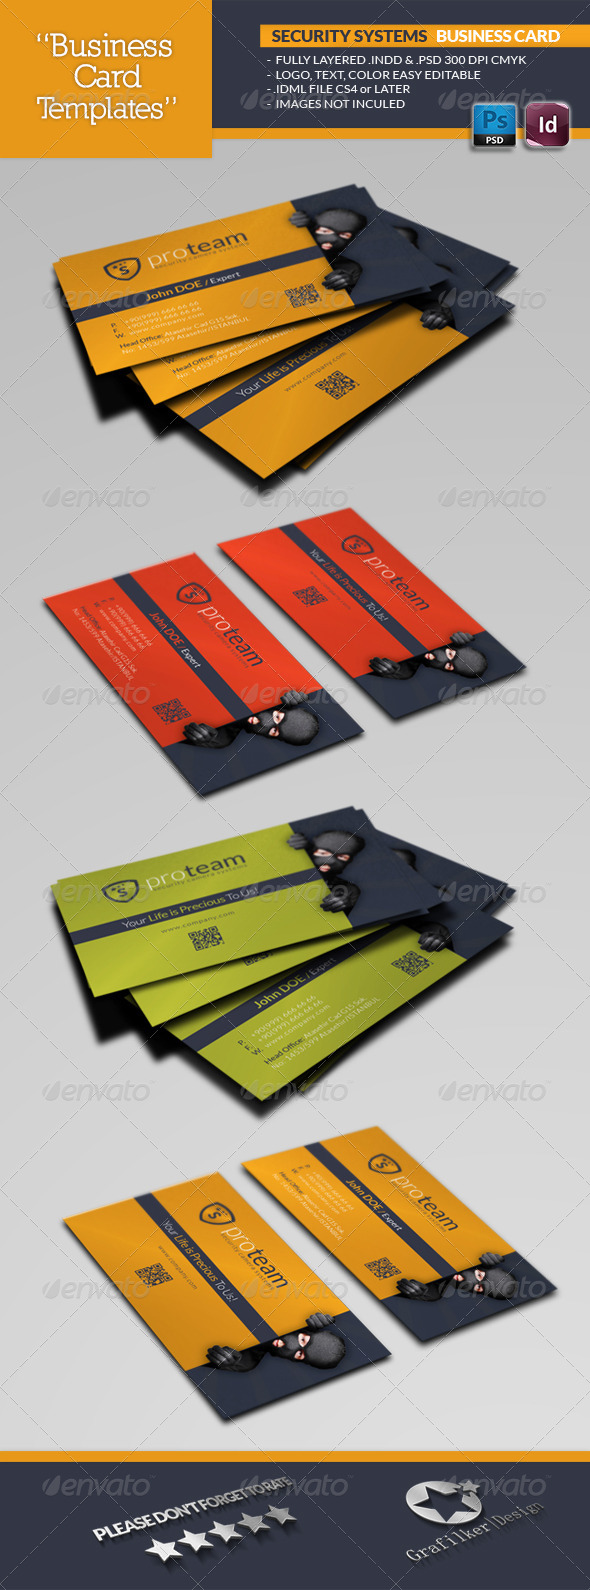 Security Systems Business Card Template - Creative Business Cards